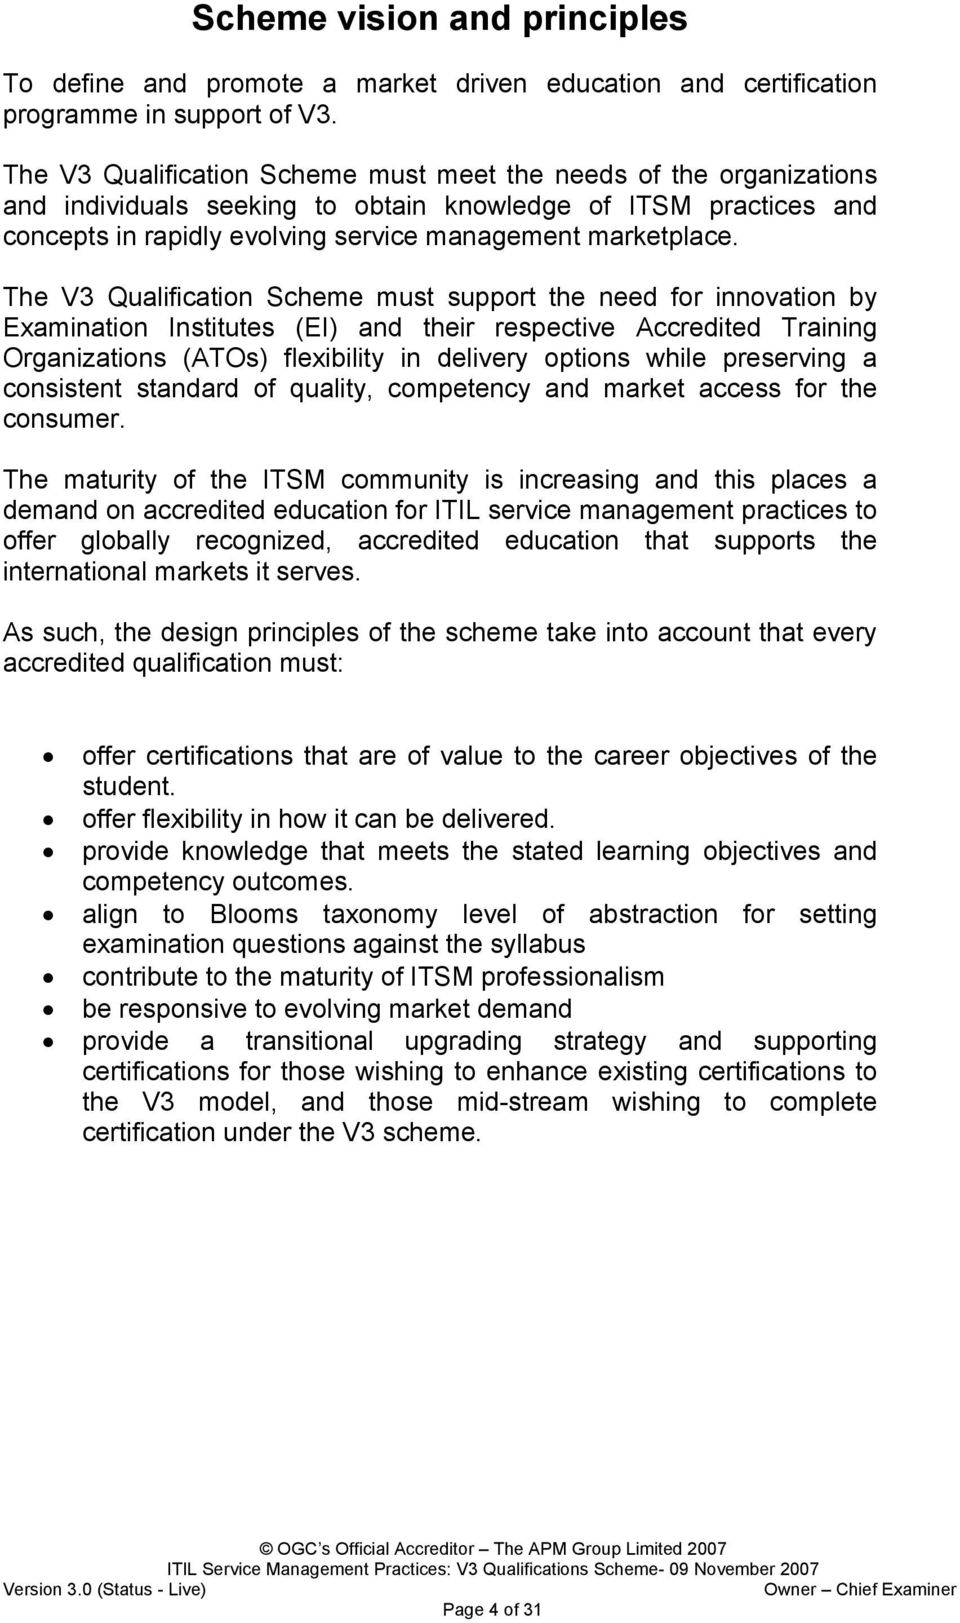 The V3 Qualification Scheme must support the need for innovation by Examination Institutes (EI) and their respective Accredited Training Organizations (ATOs) flexibility in delivery options while